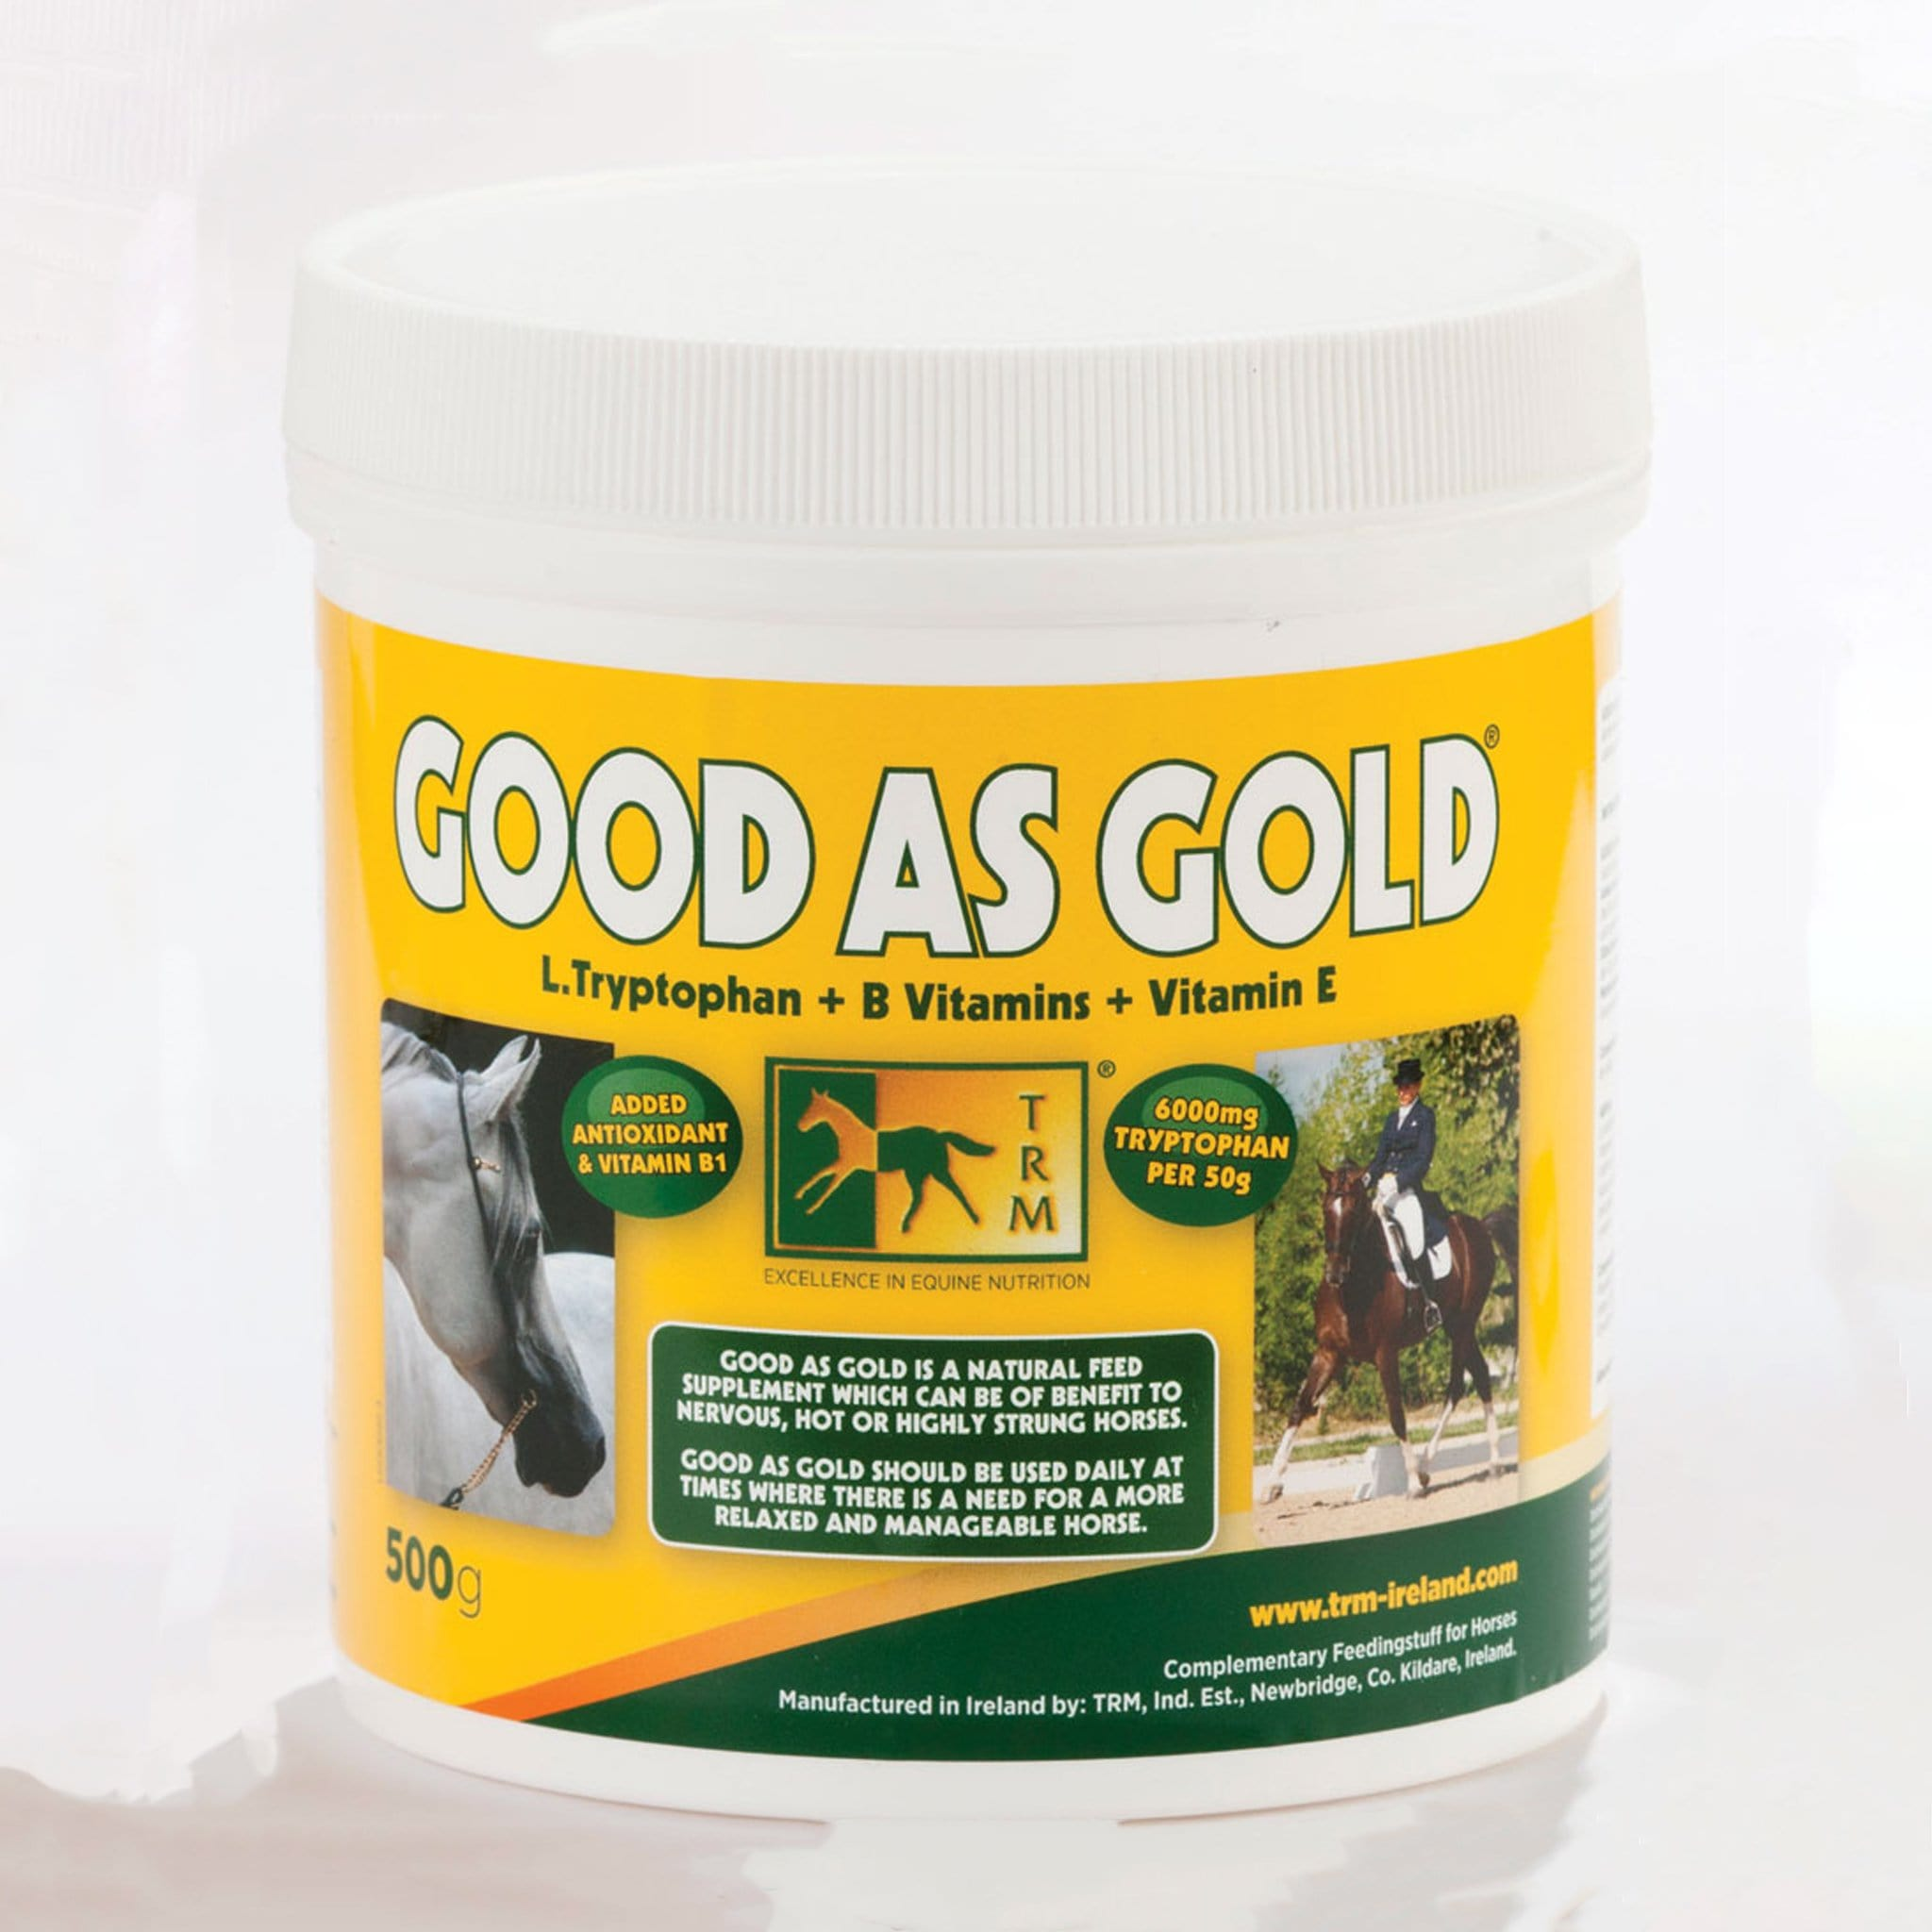 Good as Gold 7014